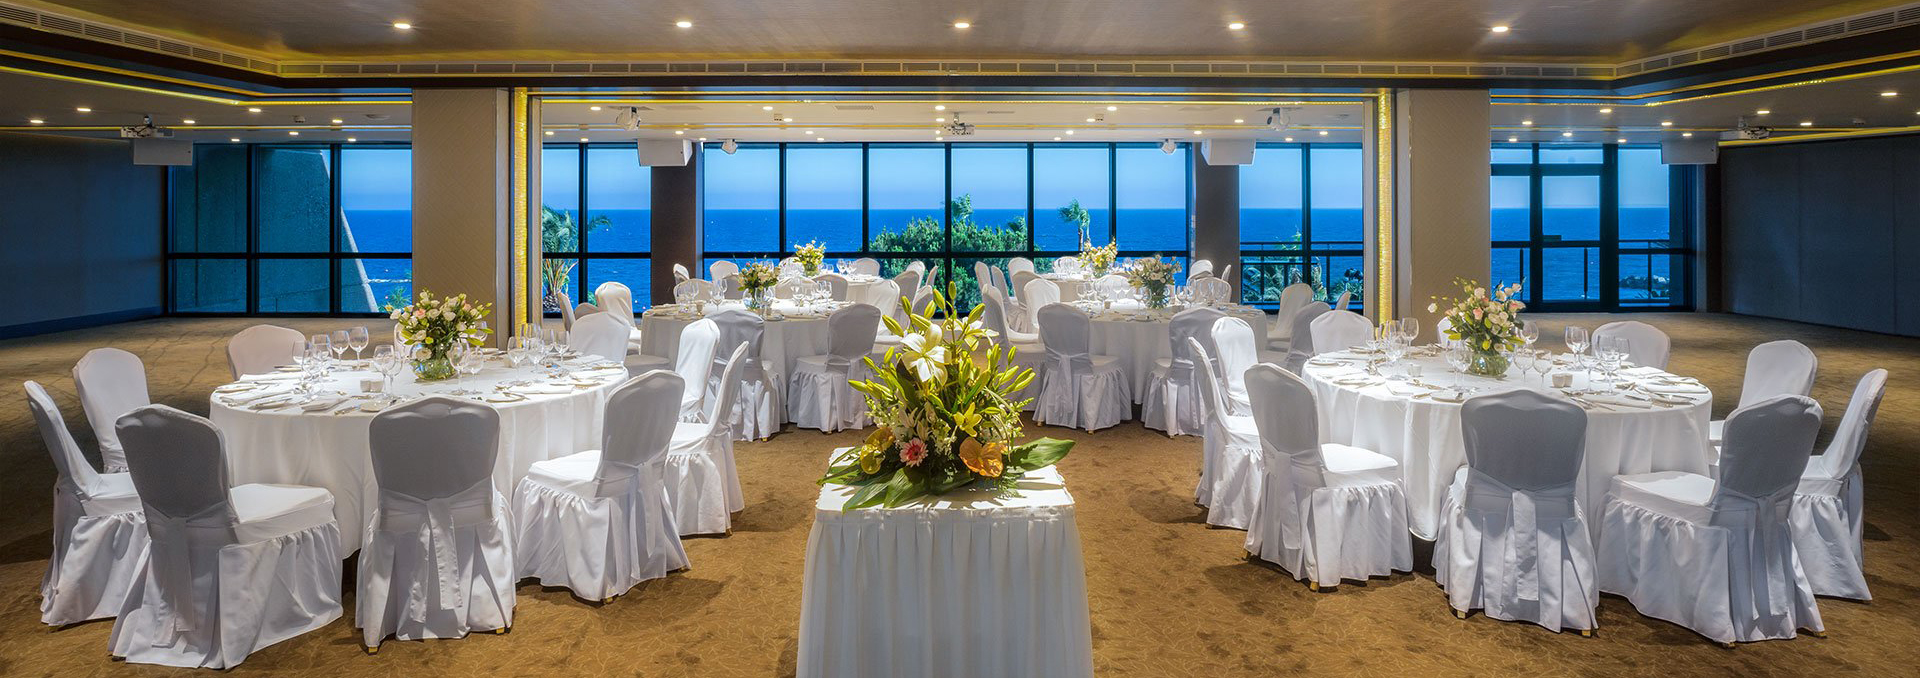 Book your wedding day in Amathus Beach Hotel Limassol